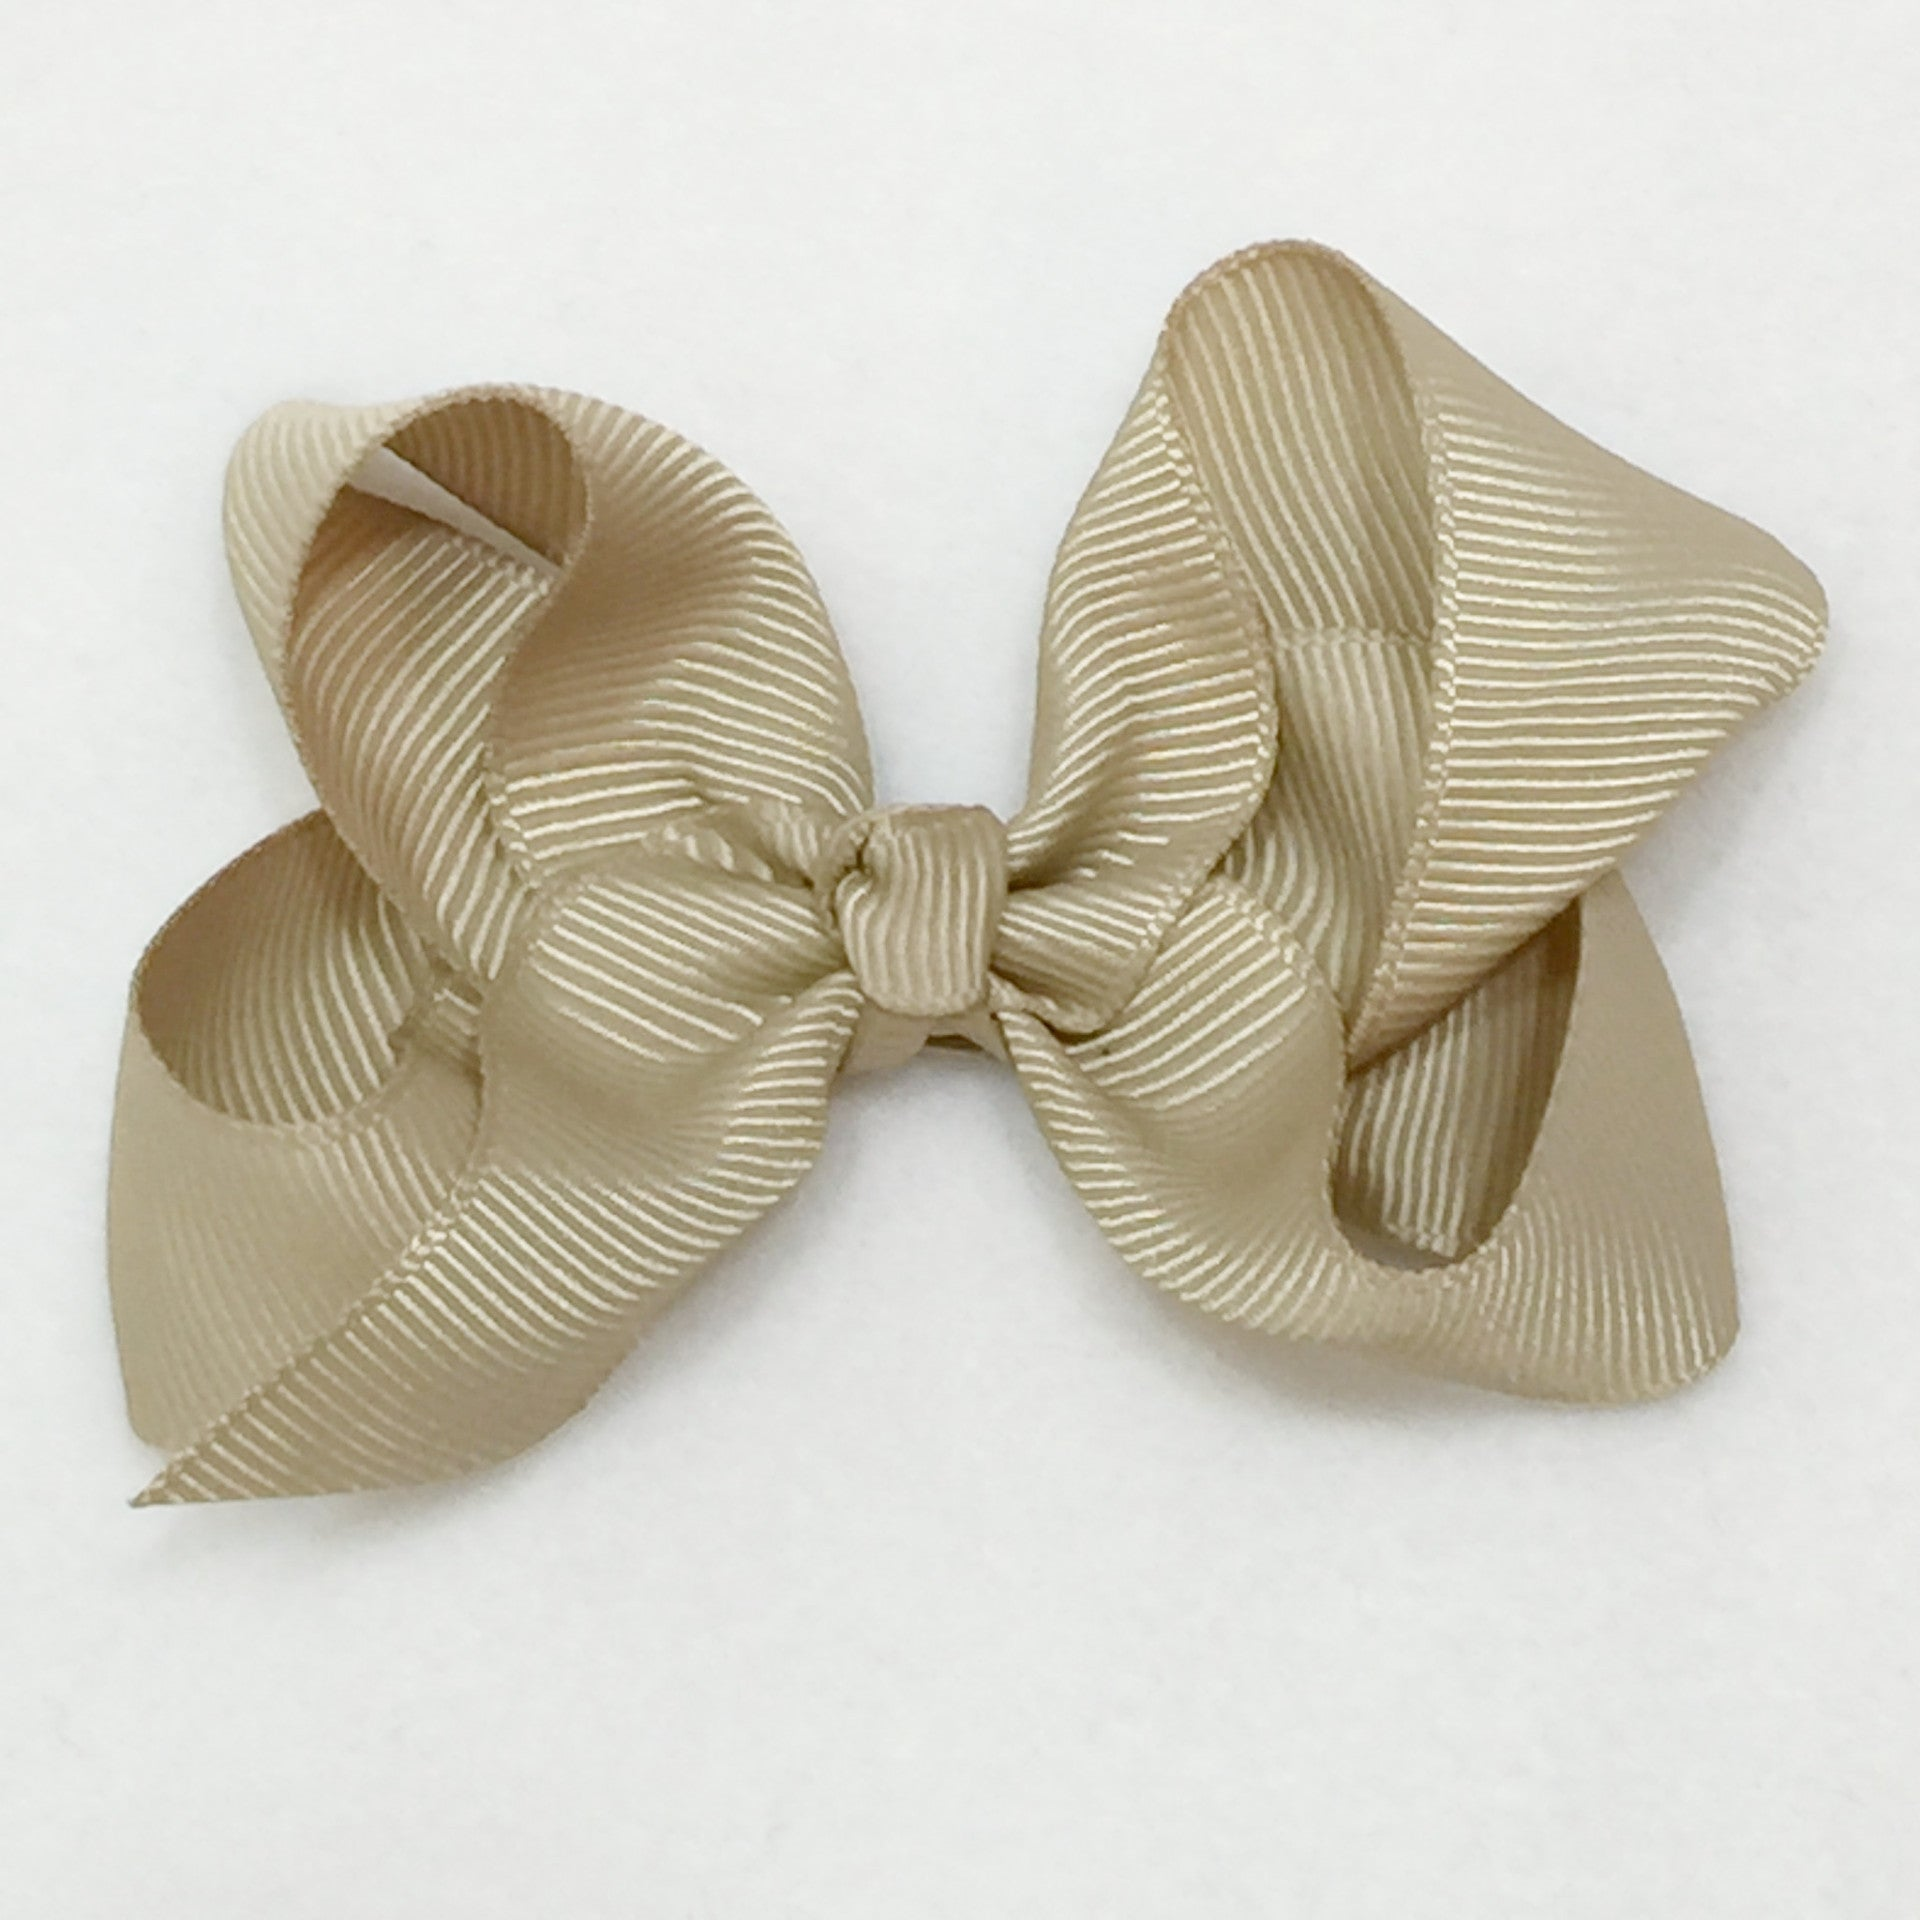 Medium Hair Bow - Tan - Cutie Bowtutie